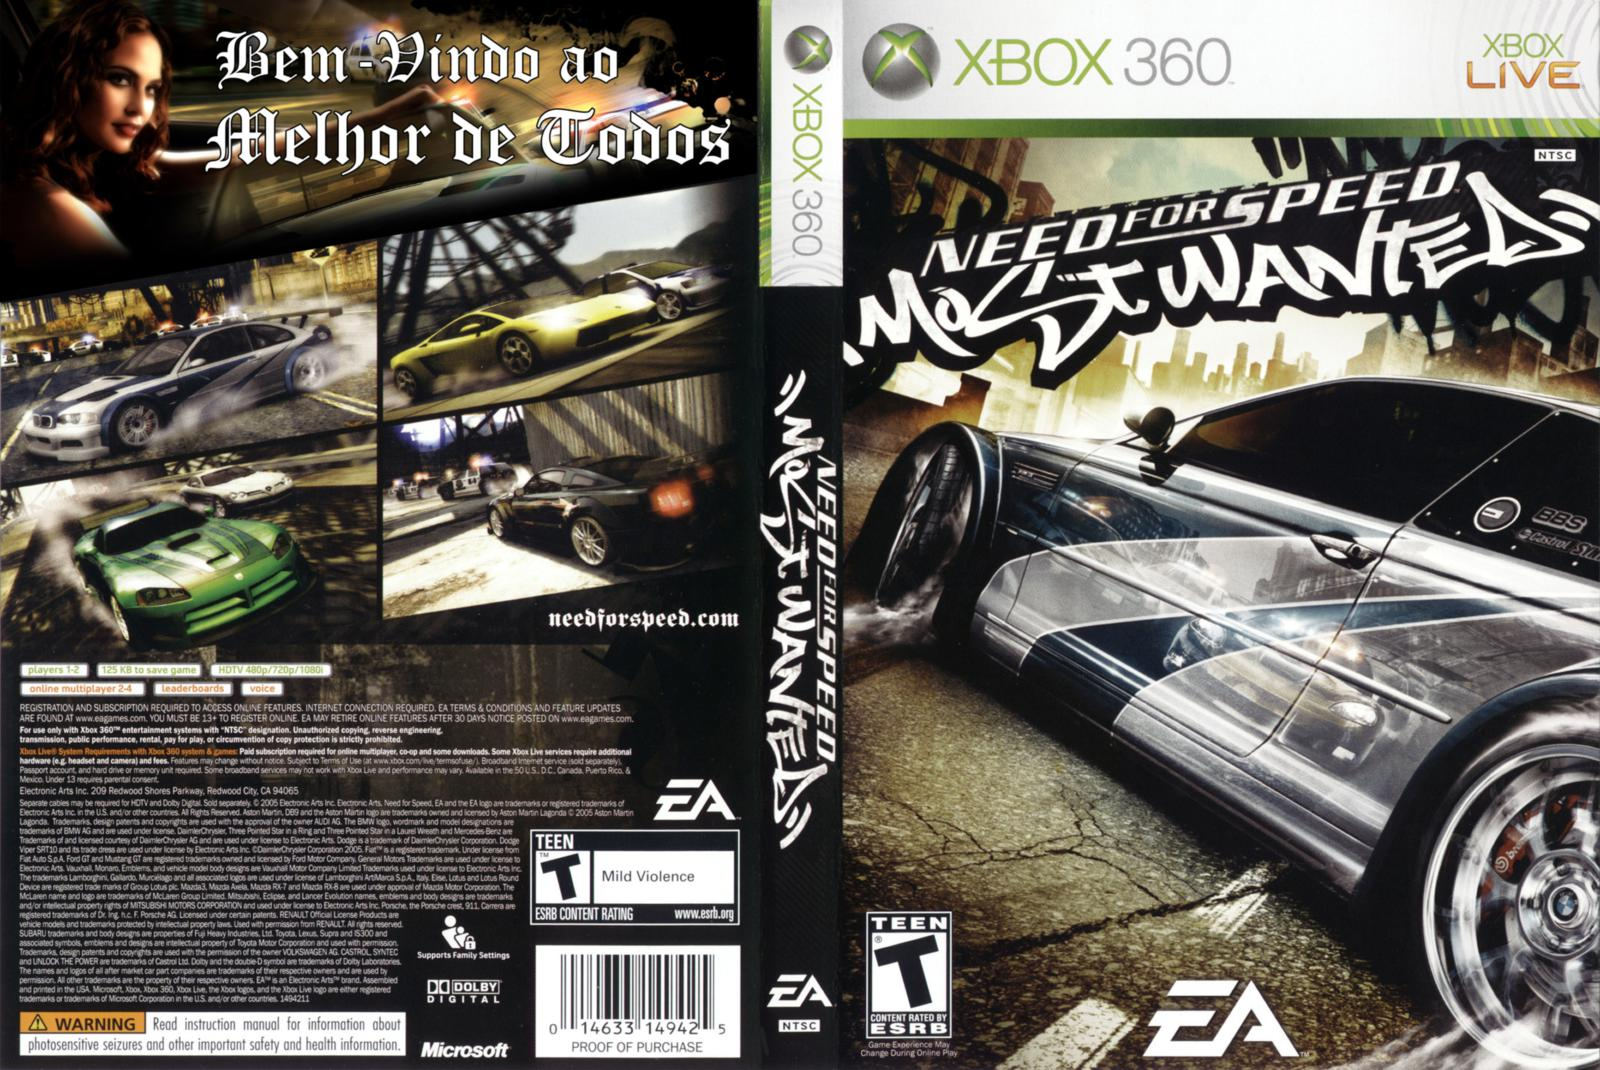 Need for speed: most wanted for xbox 360 | gamestop.